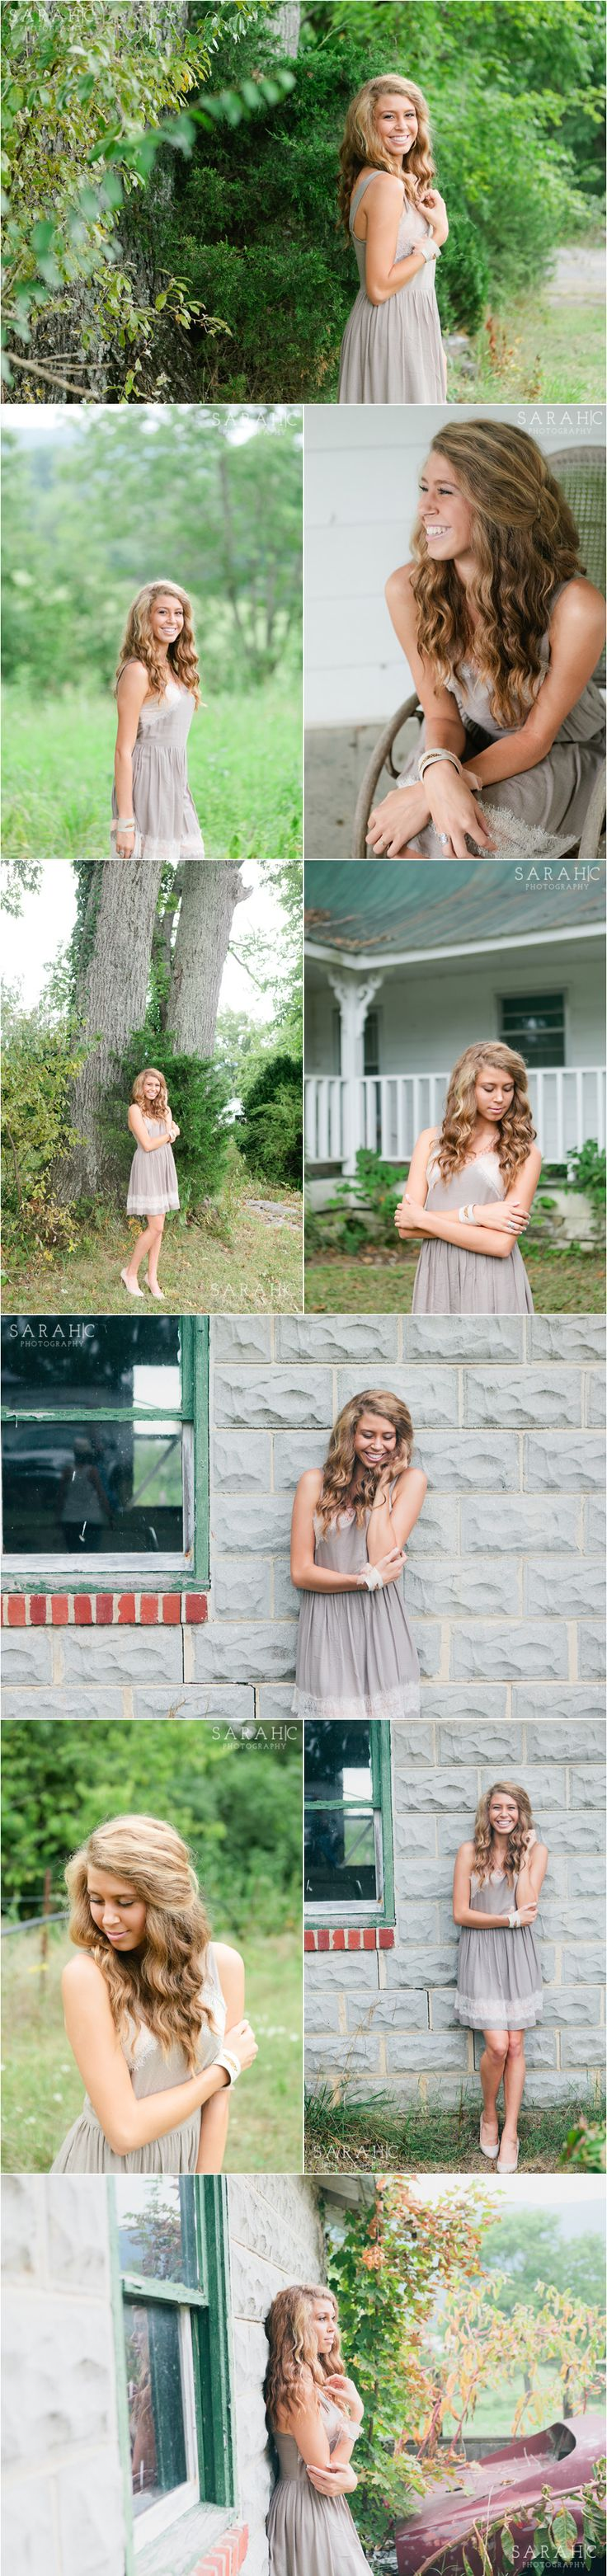 Knoxville Outdoor Senior Portraits | Sarah C. Photography | Voted Knoxville's Best Photographer | Family, Senior and Wedding Photography